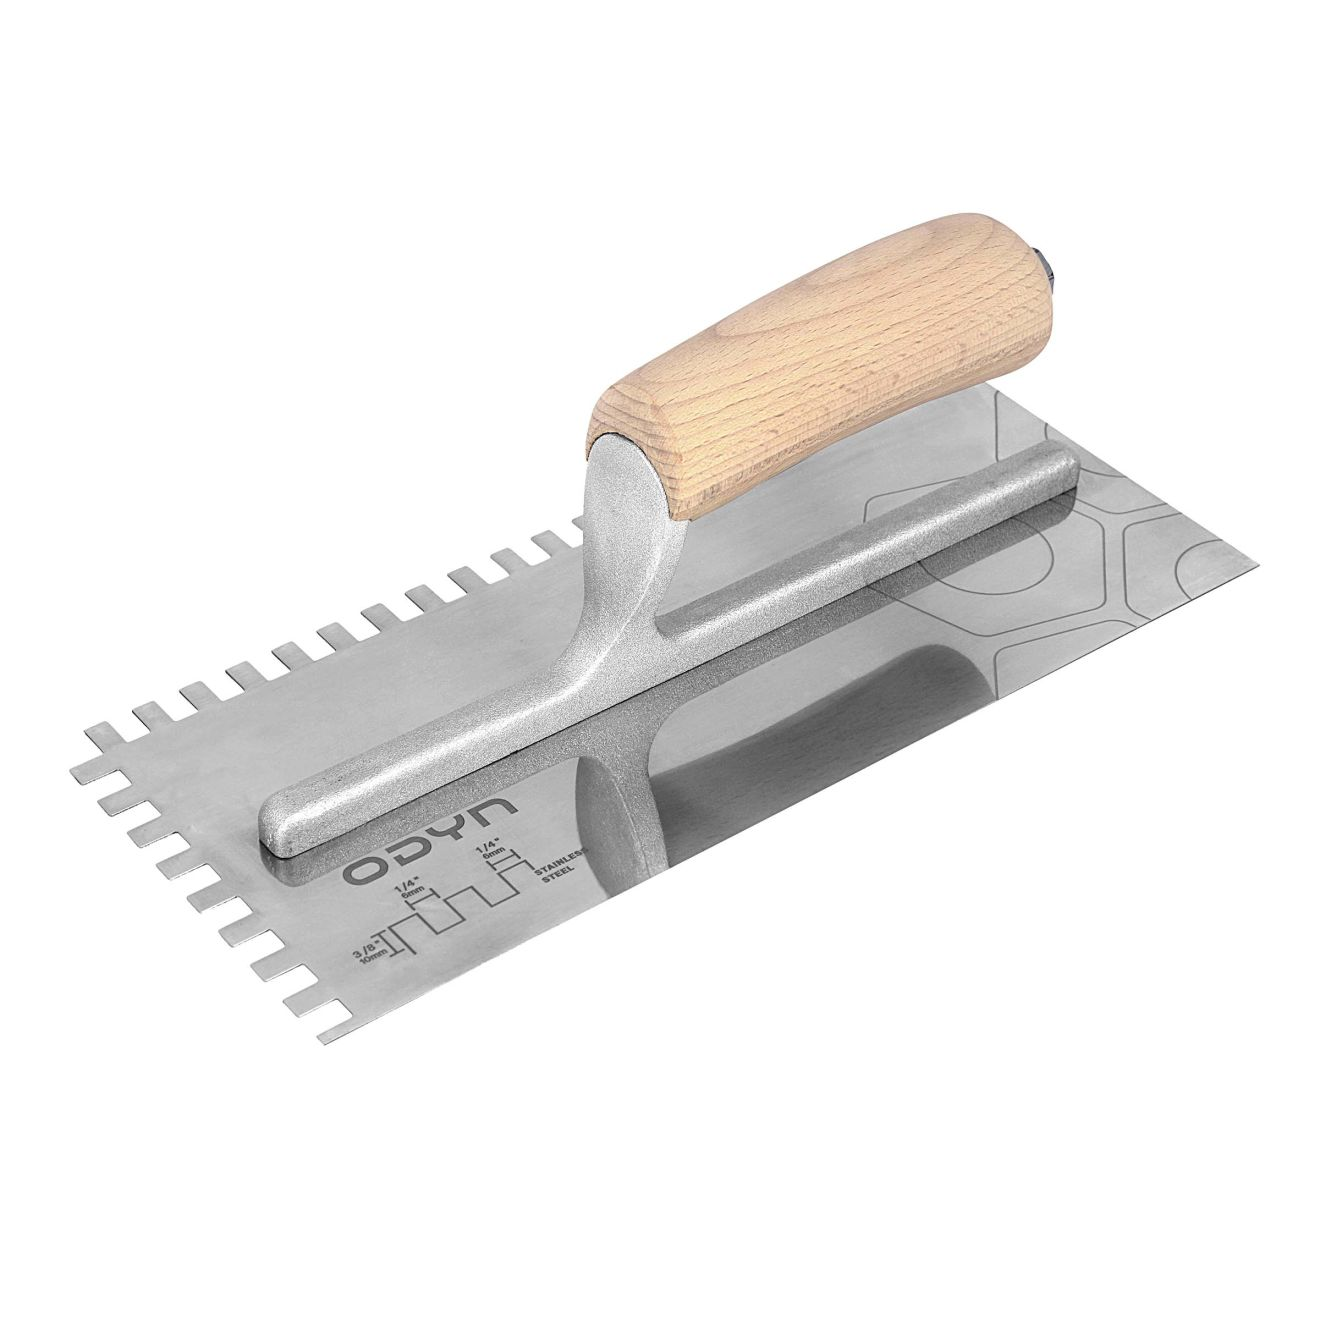 Odyn 11 in. x 1/4 in. x 3/8 in. Square-Notch Stainless Steel Trowel